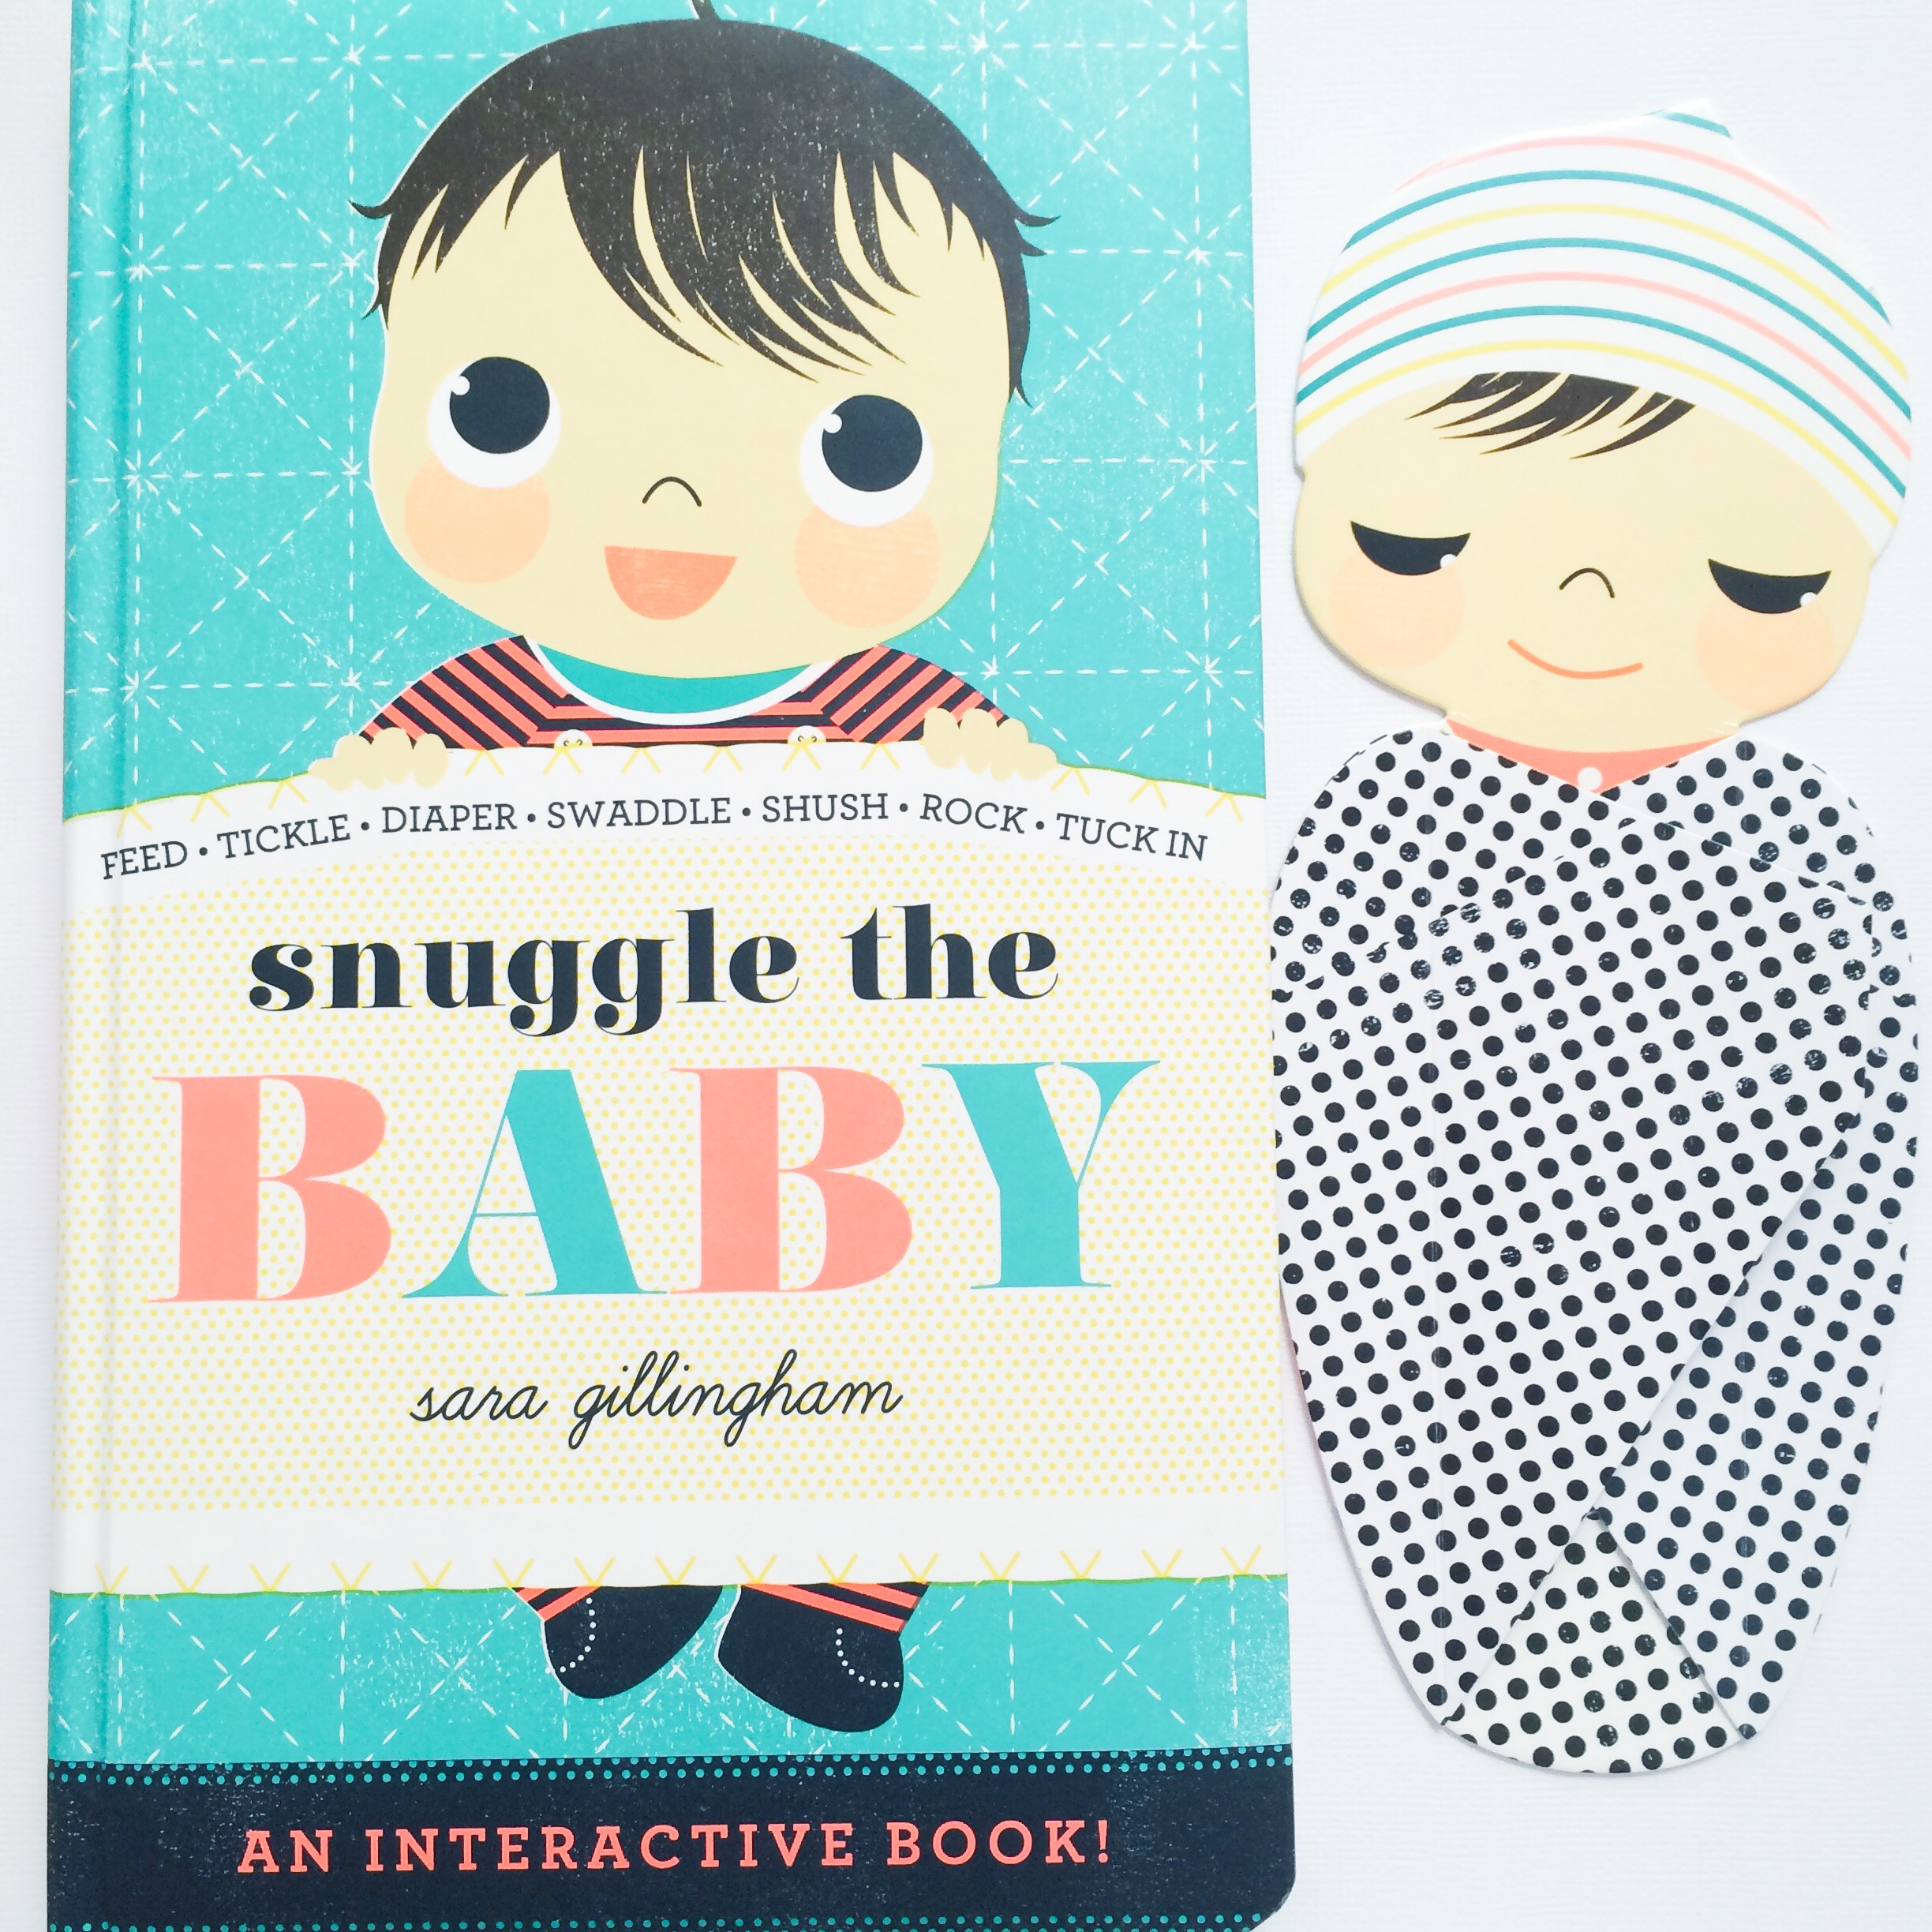 Snuggle the Baby